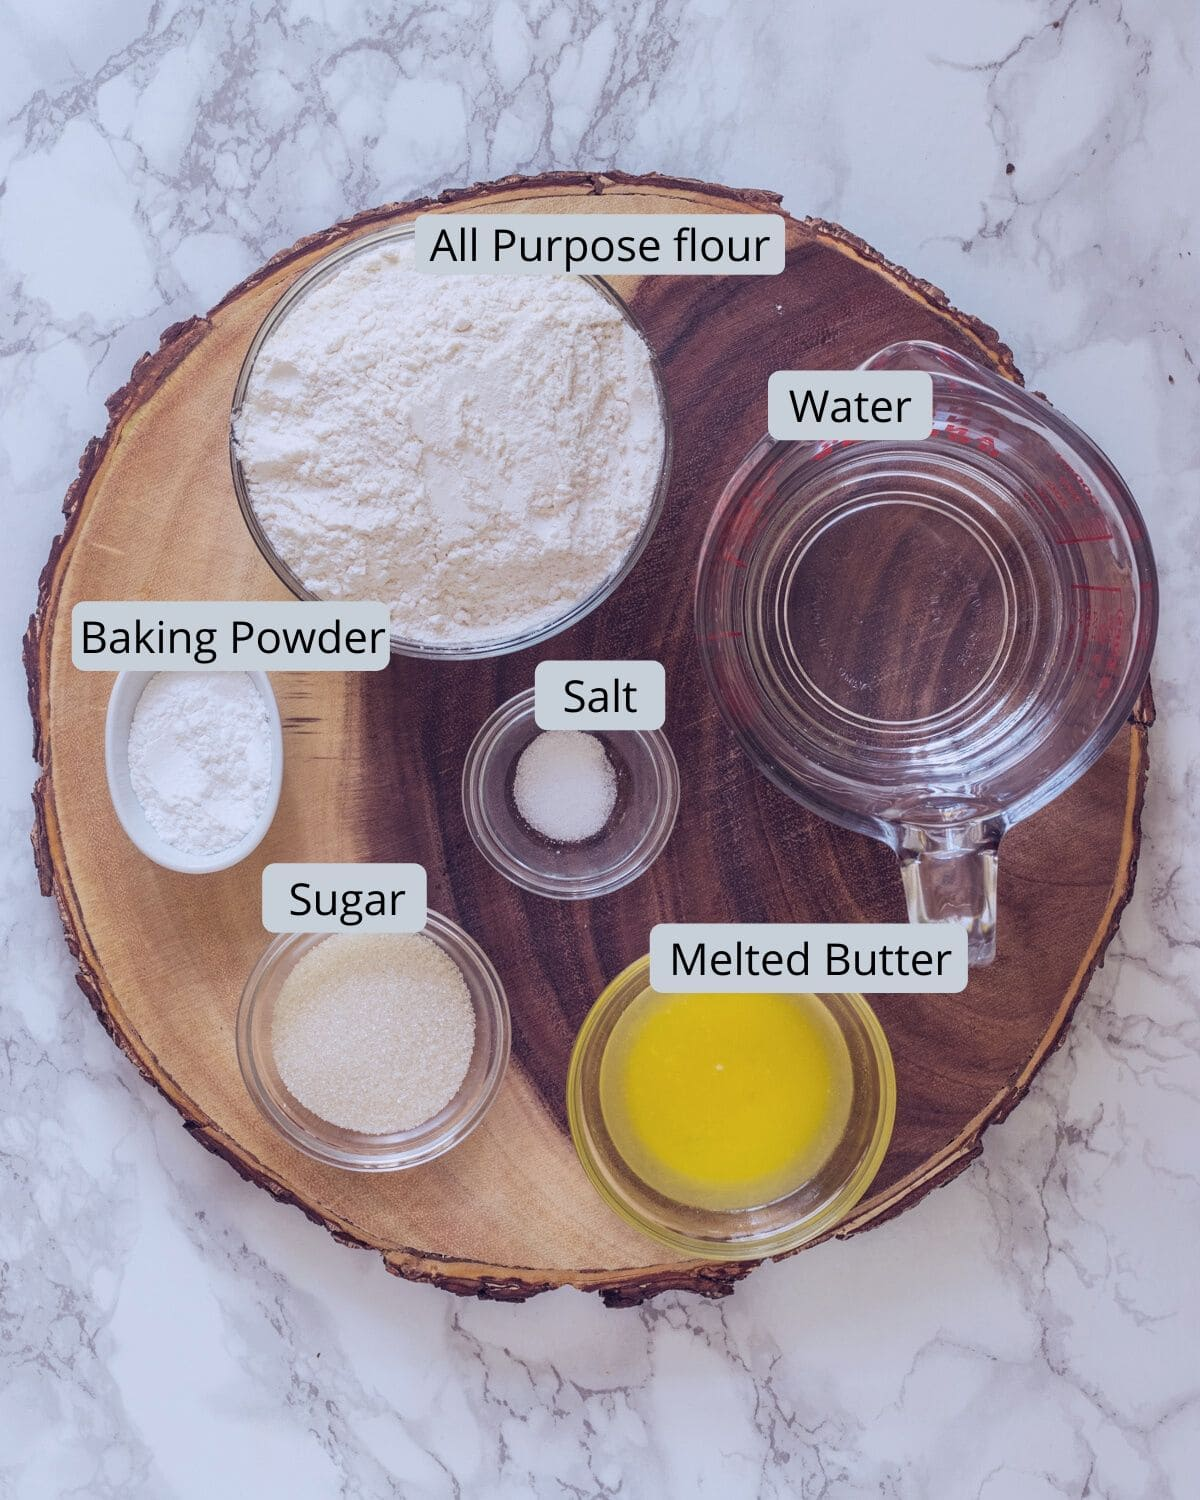 eggless pancake ingredients in individual bowls on a wooden board